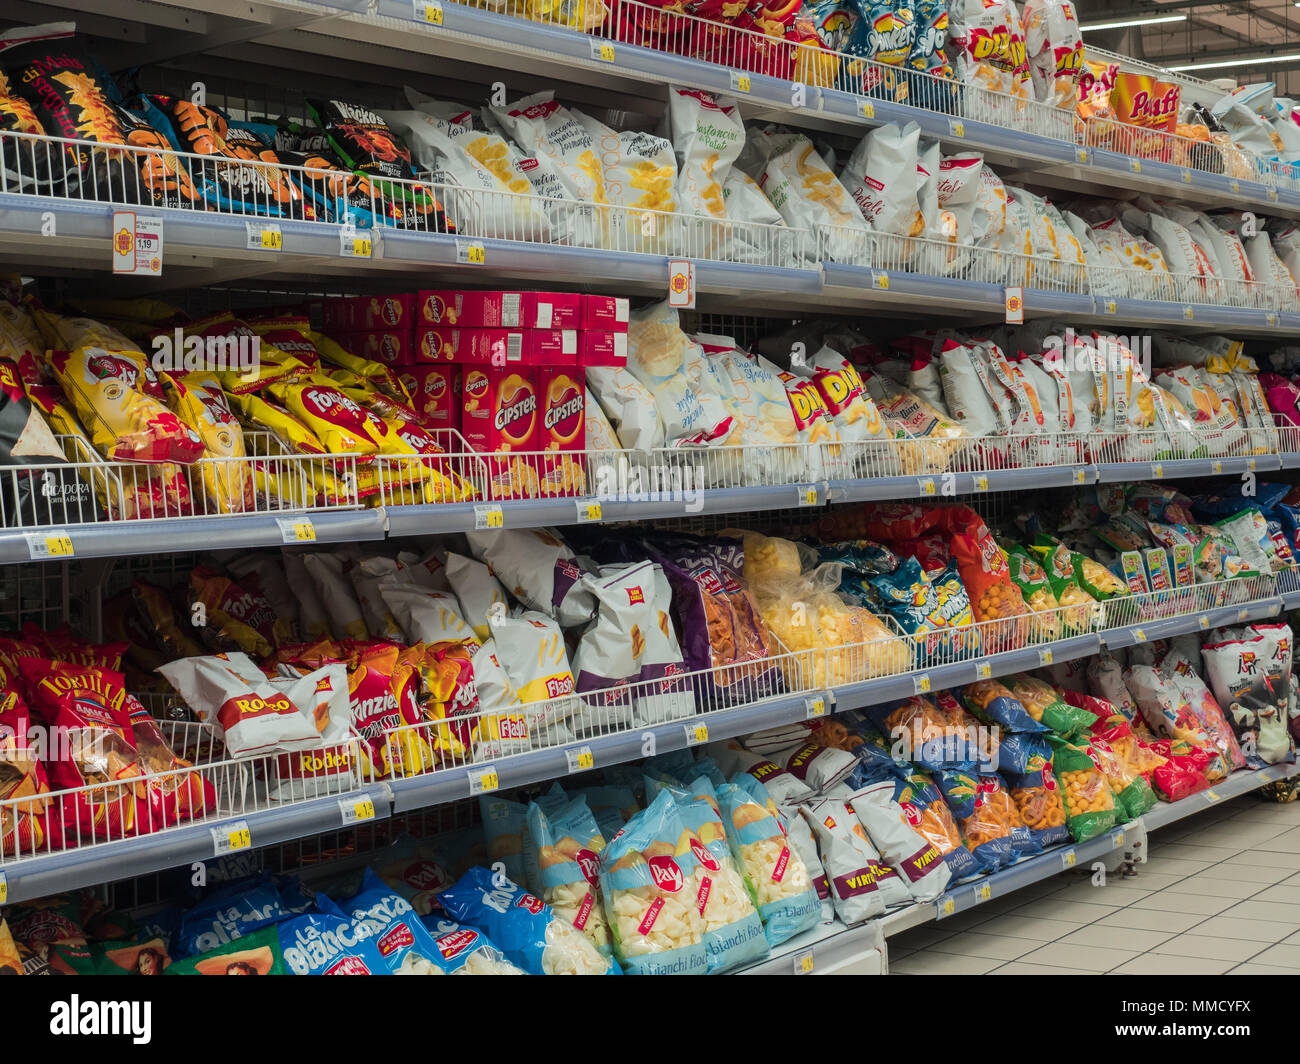 Rimini Italy March 21 2018 Shelves Of Chips Bags To Shopping